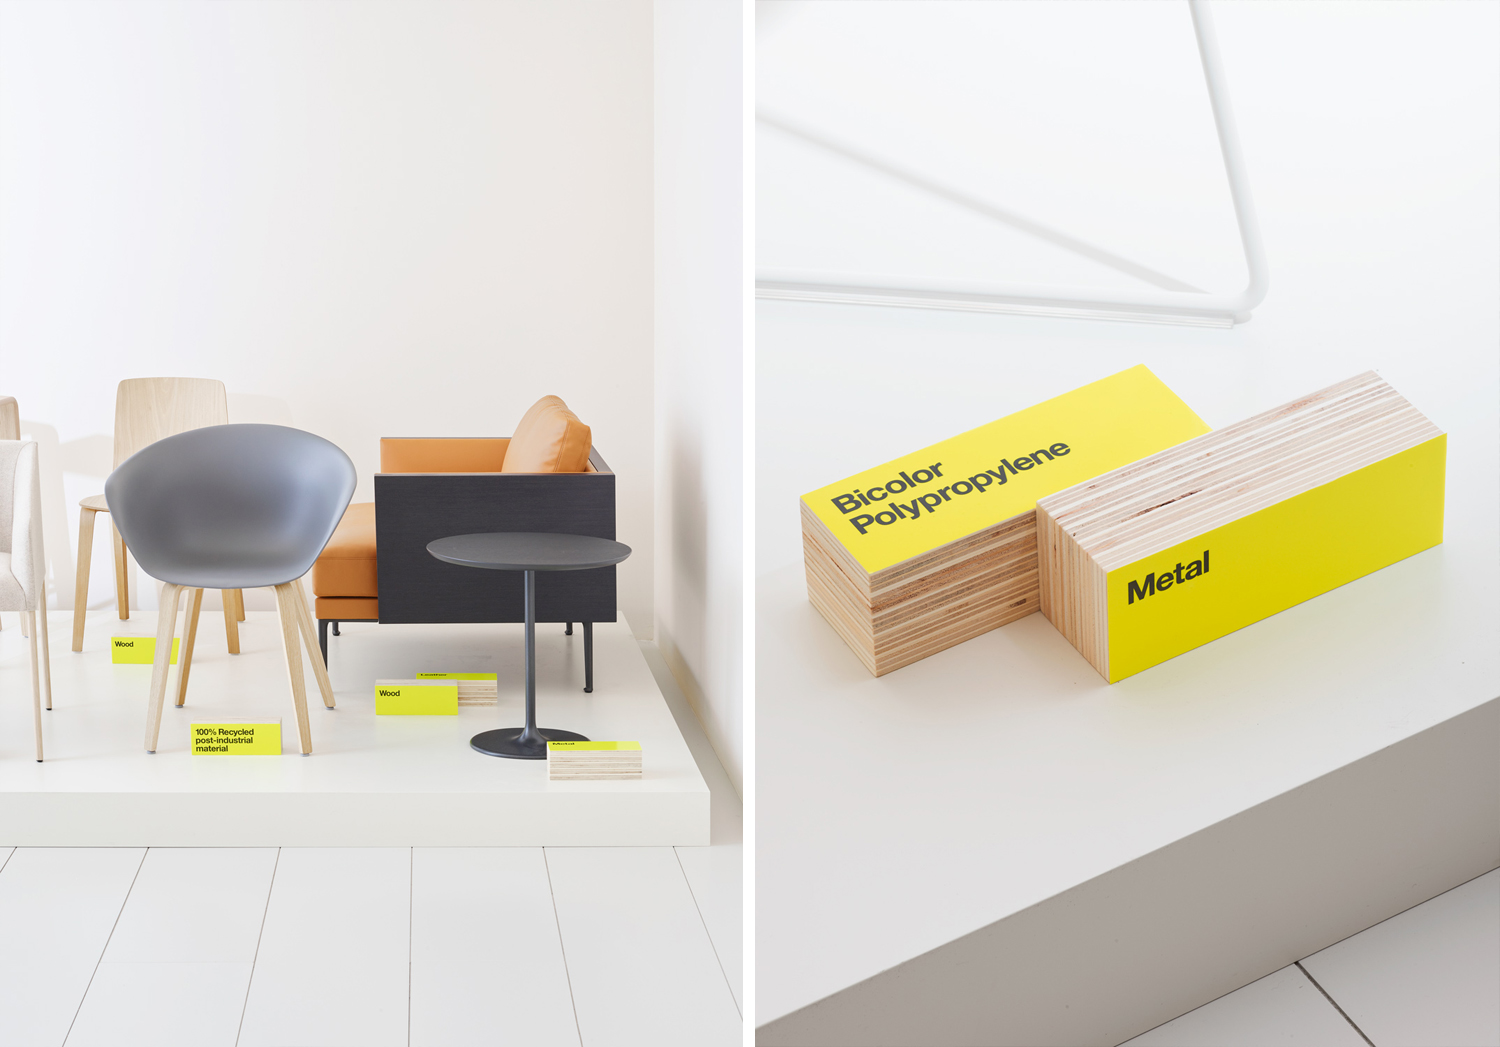 Graphic identity and signage by Clase bcn for Italian furniture company Arper